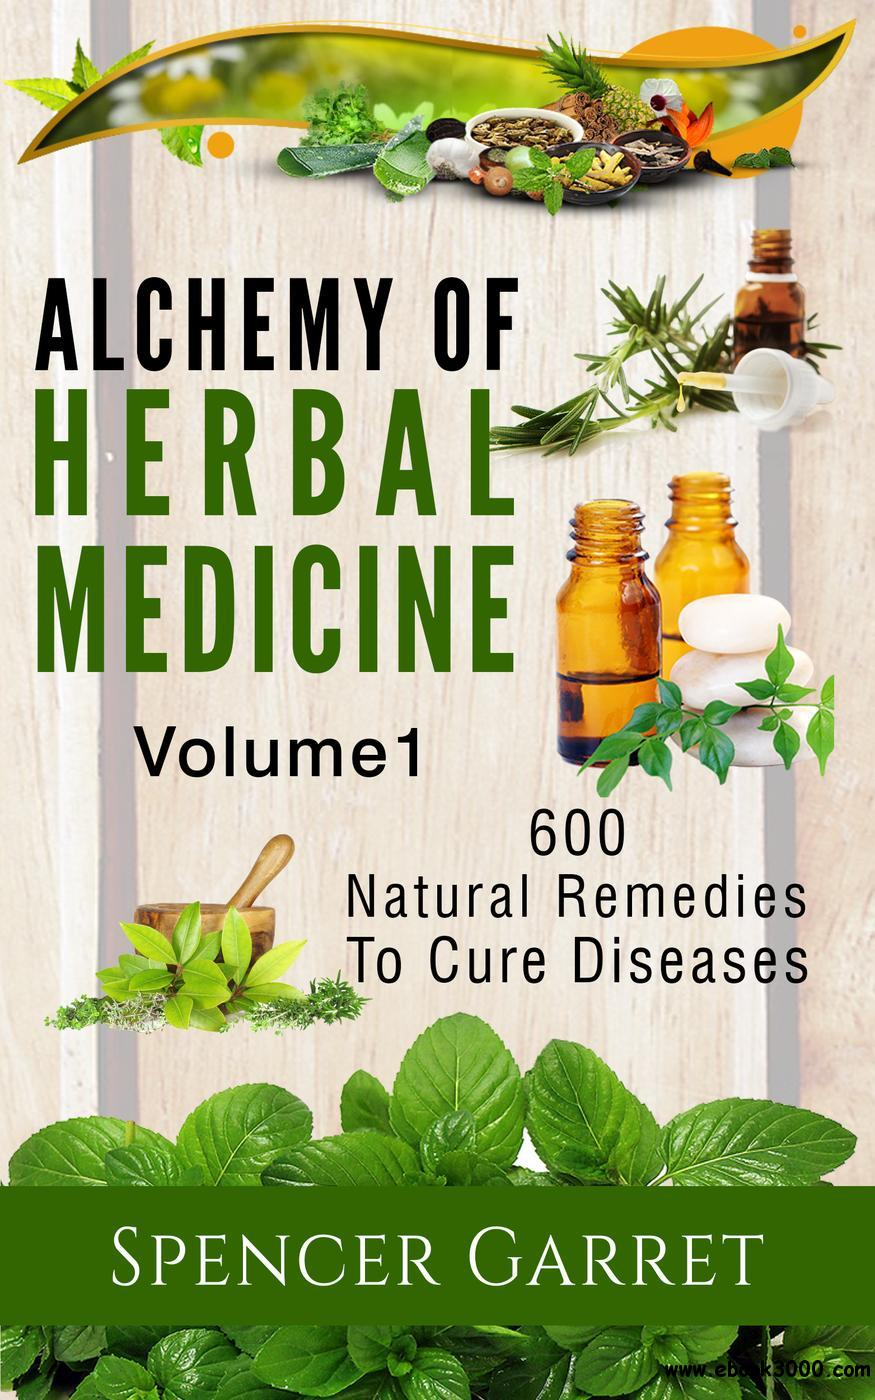 Alchemy of Herbal Medicine, Volume 1: 600 Natural Remedies to Cure Diseases (Alchemy of Herbal Medicine)